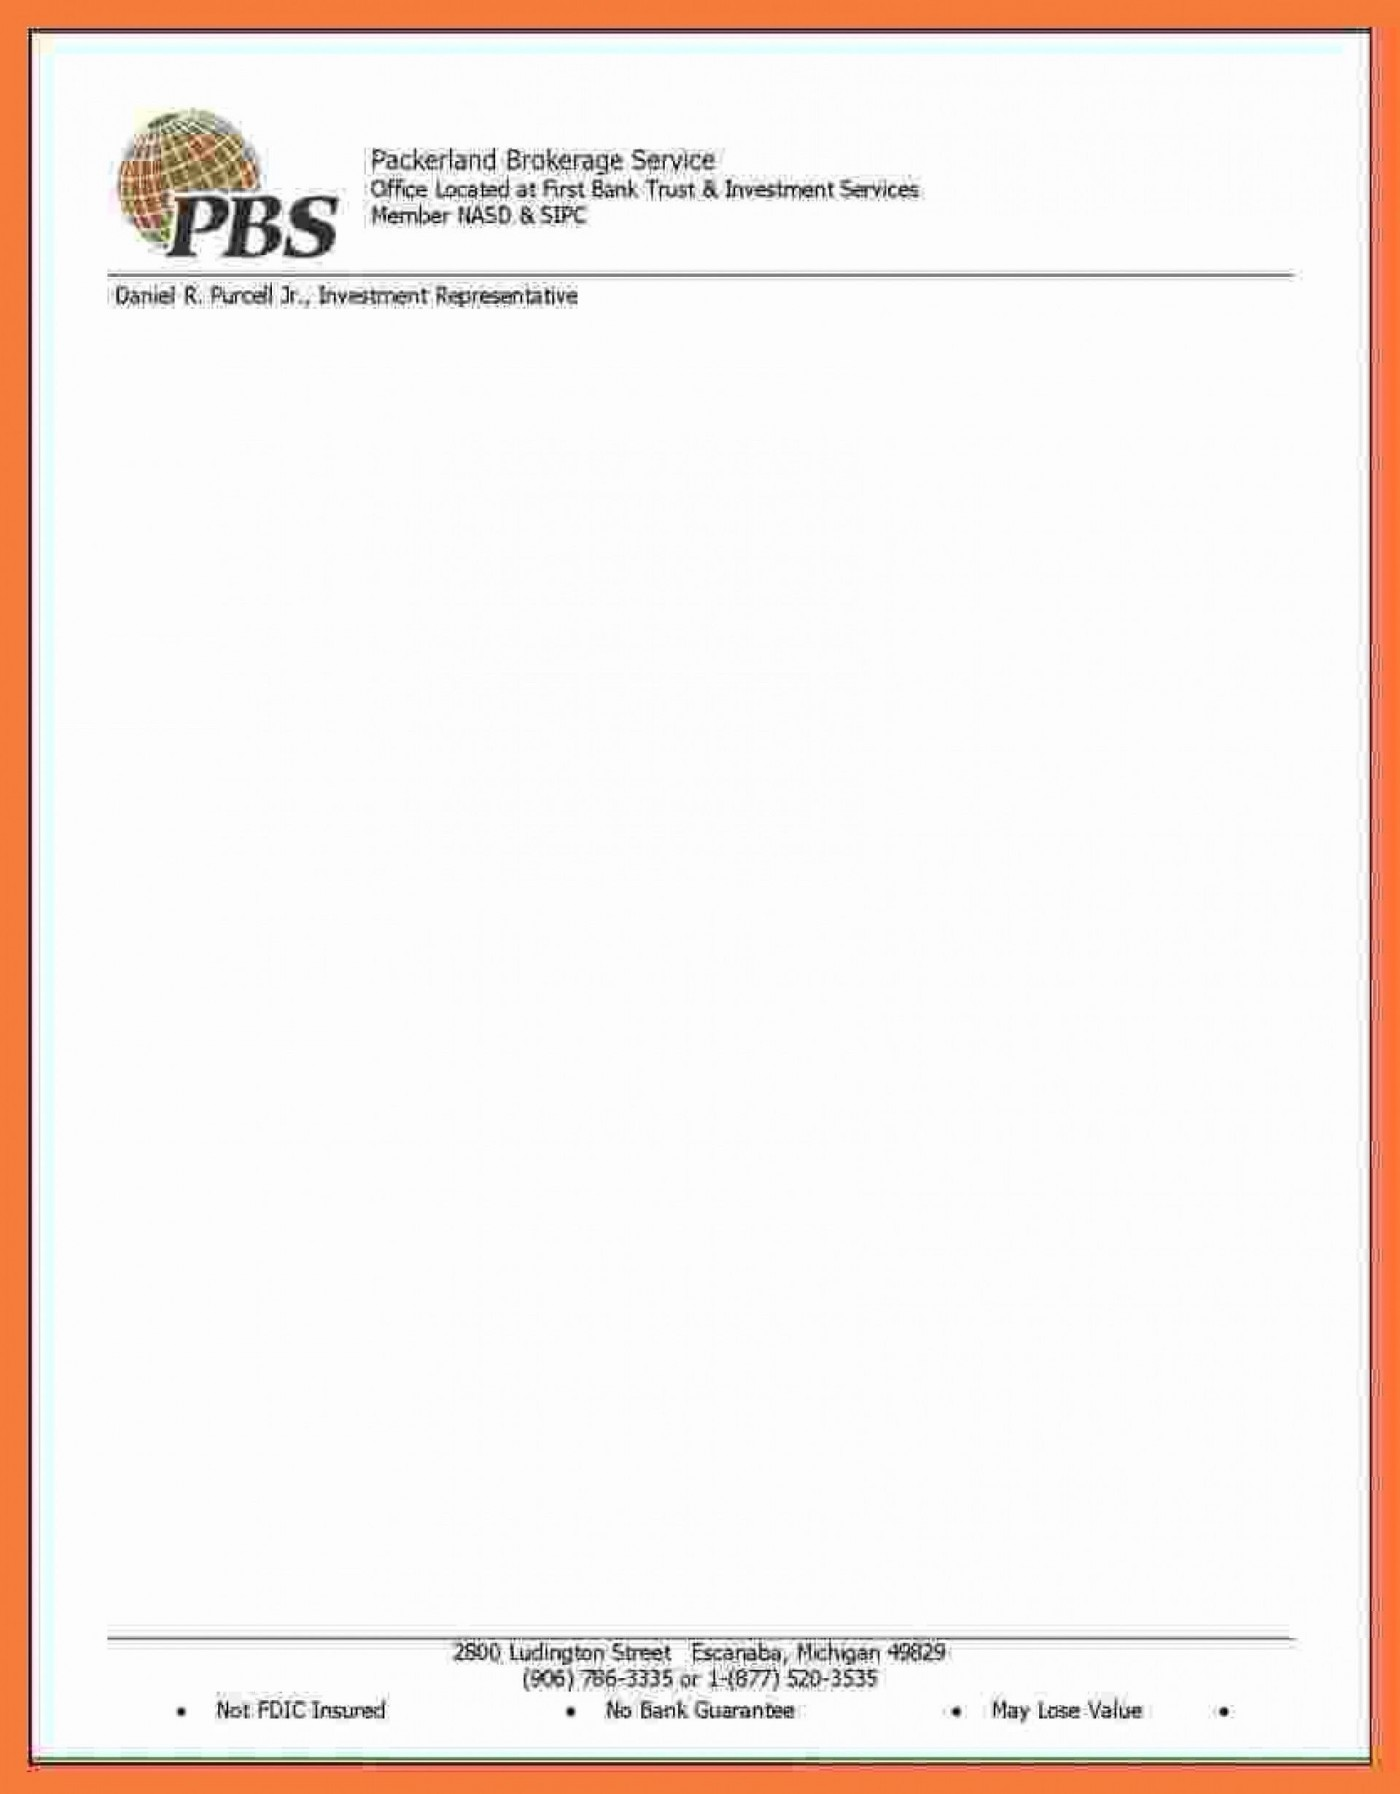 002 Shocking Letterhead Example Free Download High Resolution  Format In Word For Company Pdf1400